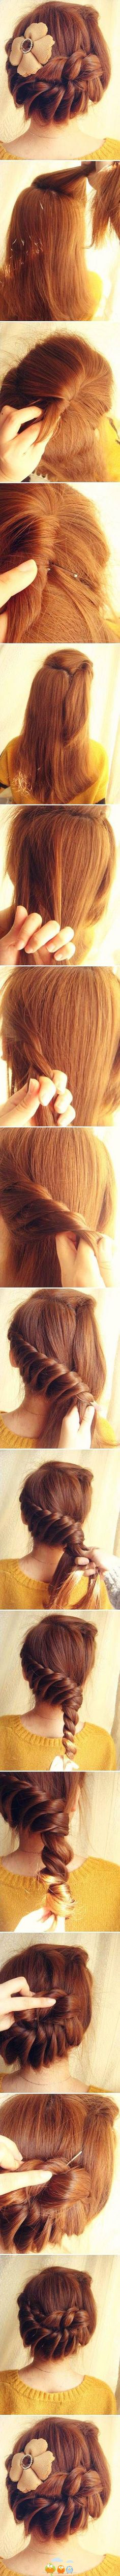 Awesome  updo